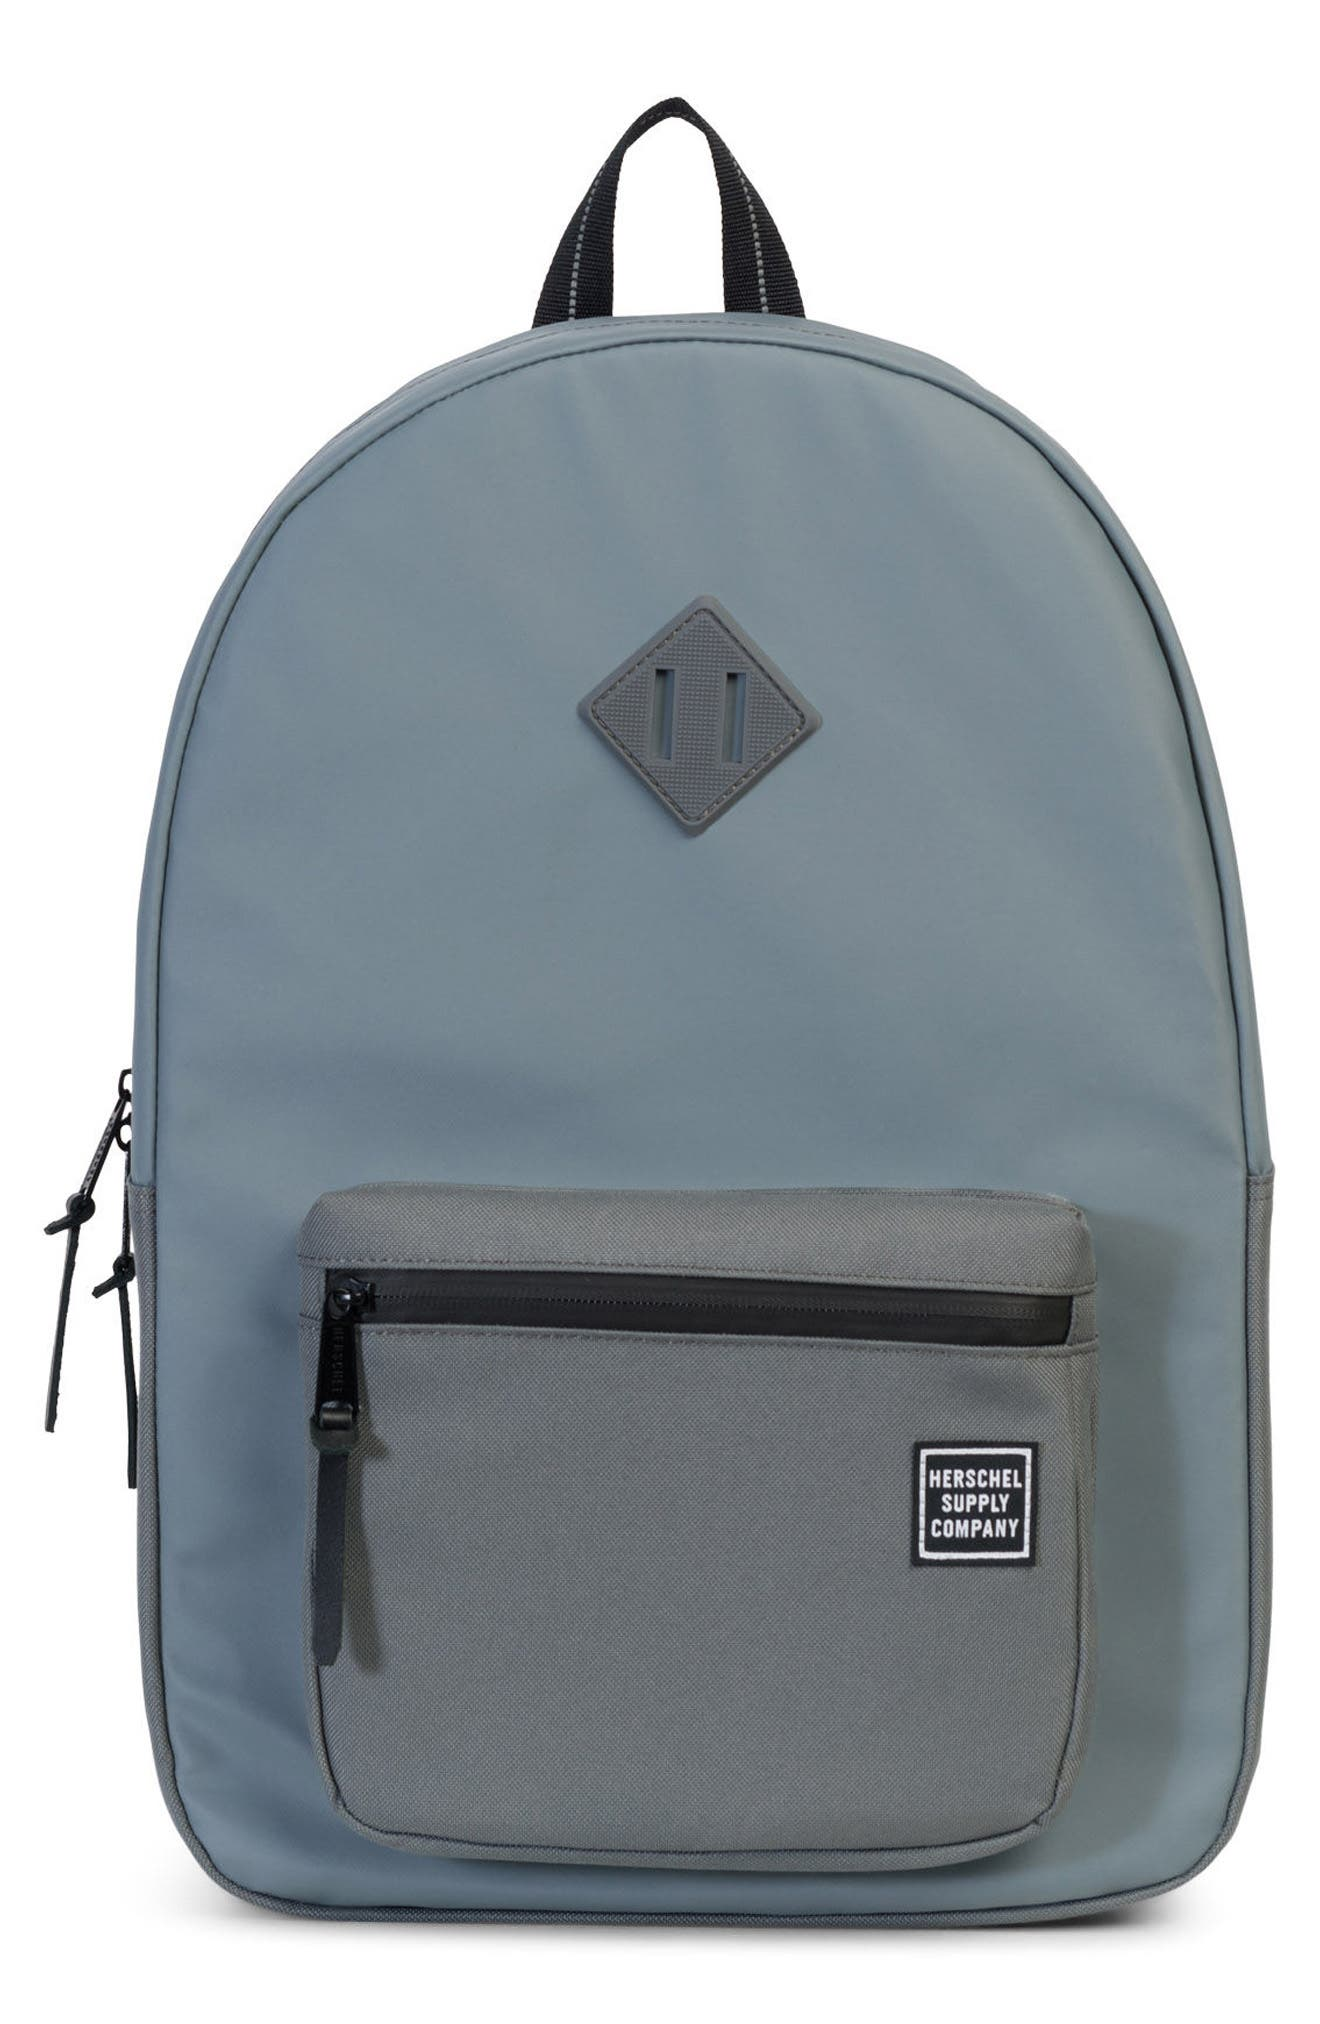 Ruskin Studio Collection Backpack,                         Main,                         color, Quiet Shade